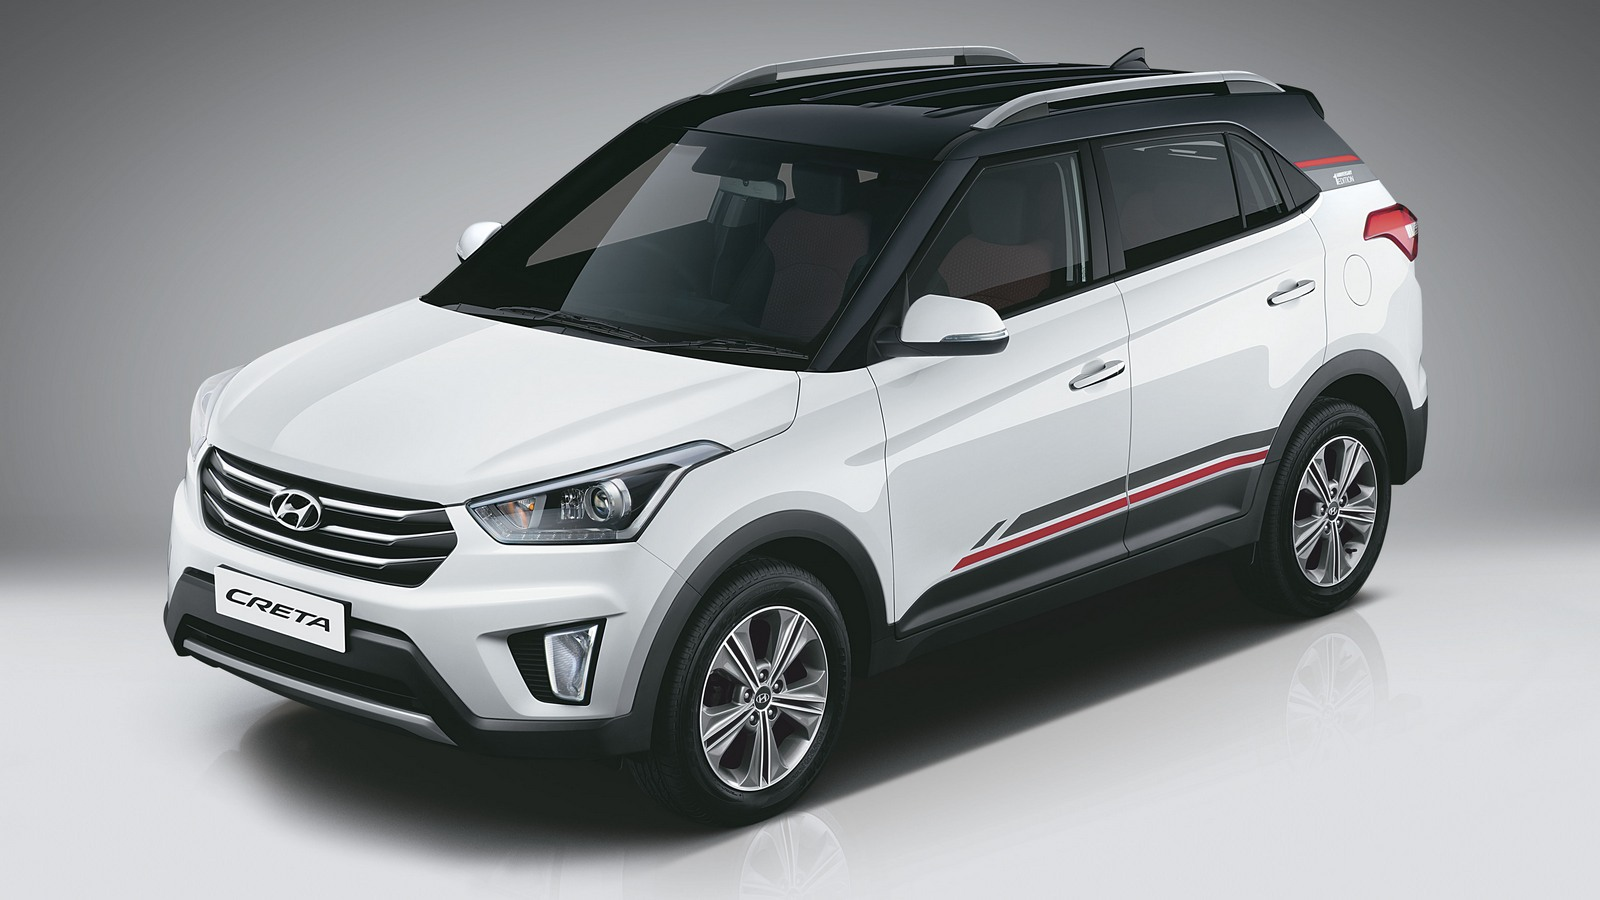 volkswagen jeep 2018 with Startovali Prodazhi Hyundai Creta Anniversary Edition on Lamborghini urus 2018 4k 3 Wallpapers additionally Startovali Prodazhi Hyundai Creta Anniversary Edition besides Preview 2018 Nissan Kicks also 2017 Bmw X1 Review likewise Land Rover Adds New Engines To Discovery Sport And Evoque.